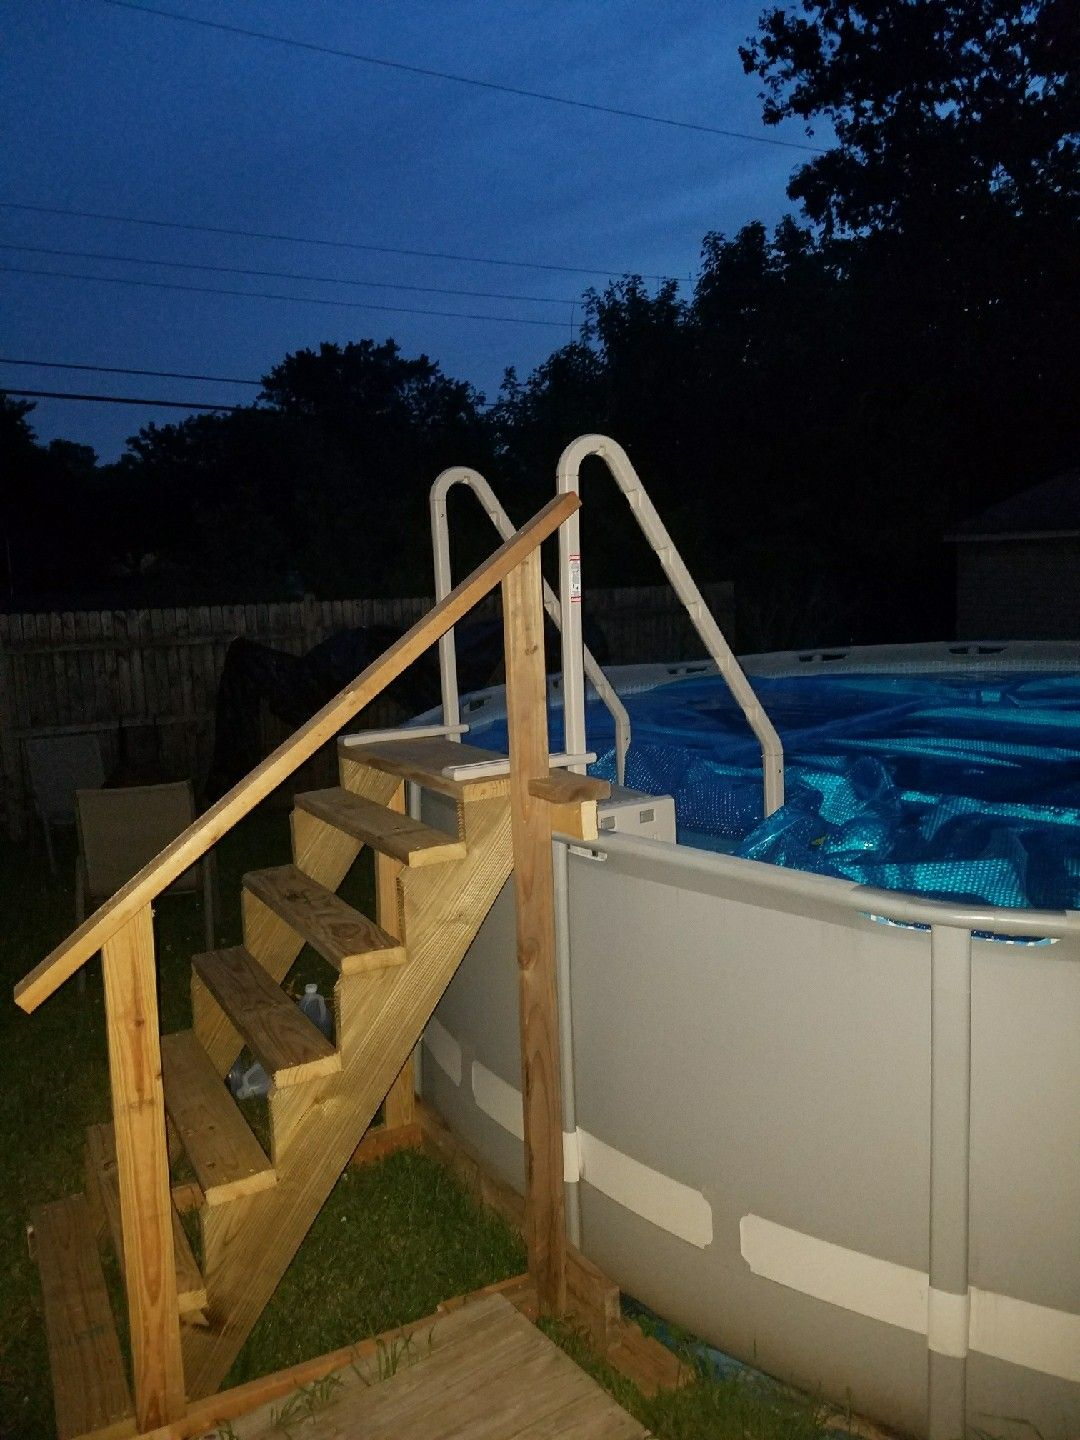 Intex Oder Bestway Frame Pool I Built Stairs For Our Pool With Confer Steps Attached For